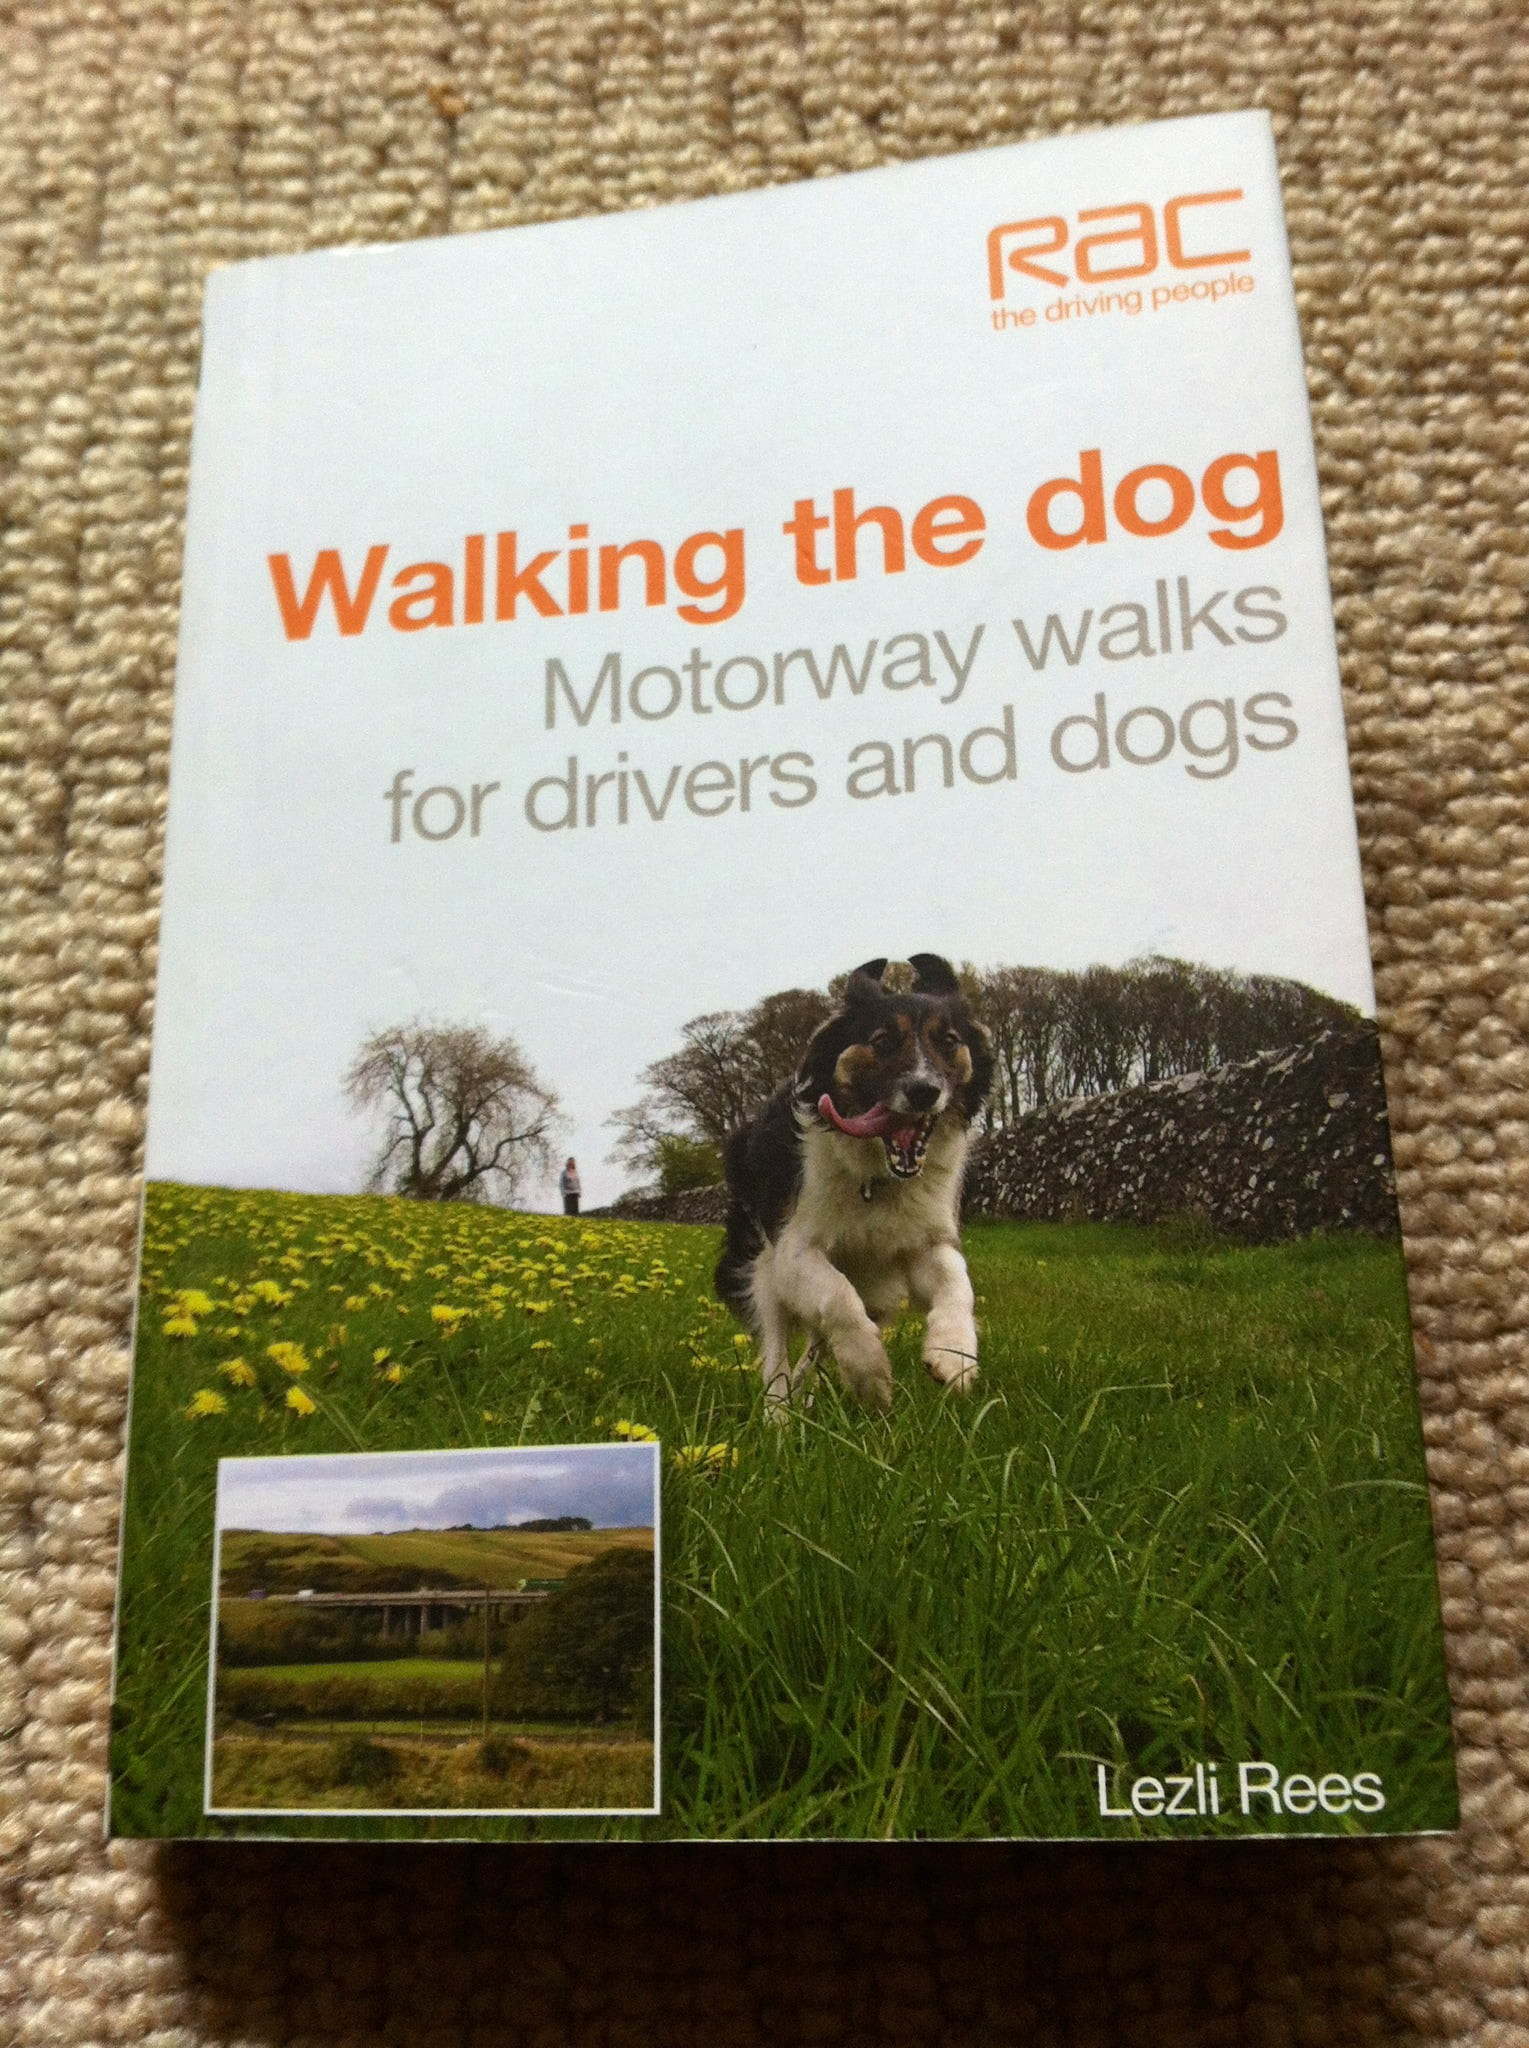 Motorway walks for drivers and dogs